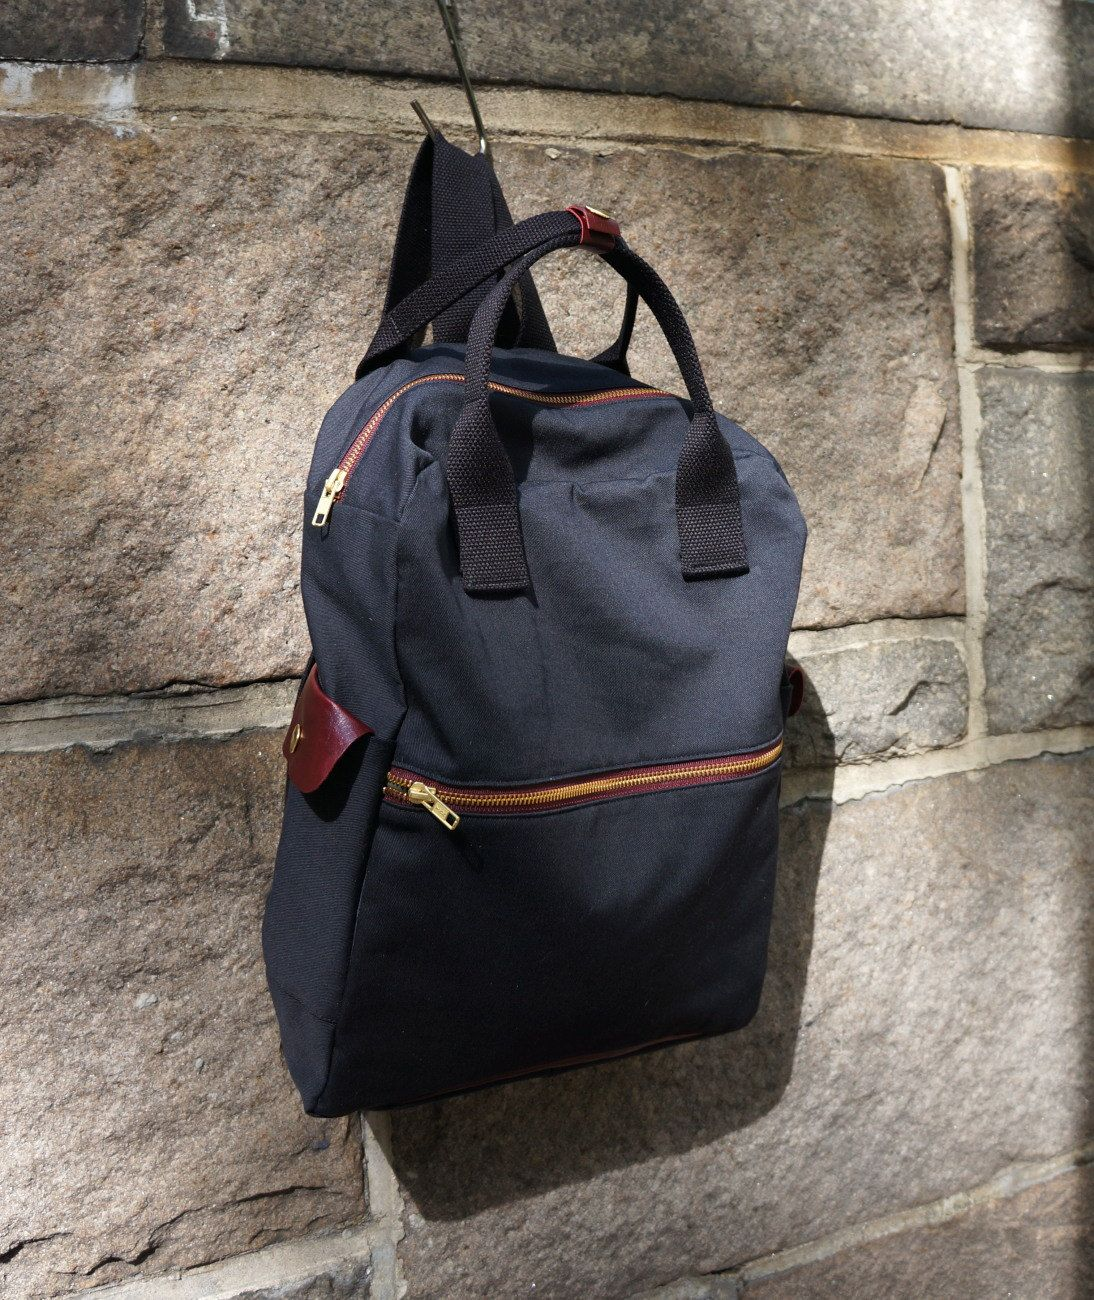 Cosmo backpack in black canvas twill men messenger laptop bag school bag leather bag fashion bag large capacity bag back to school